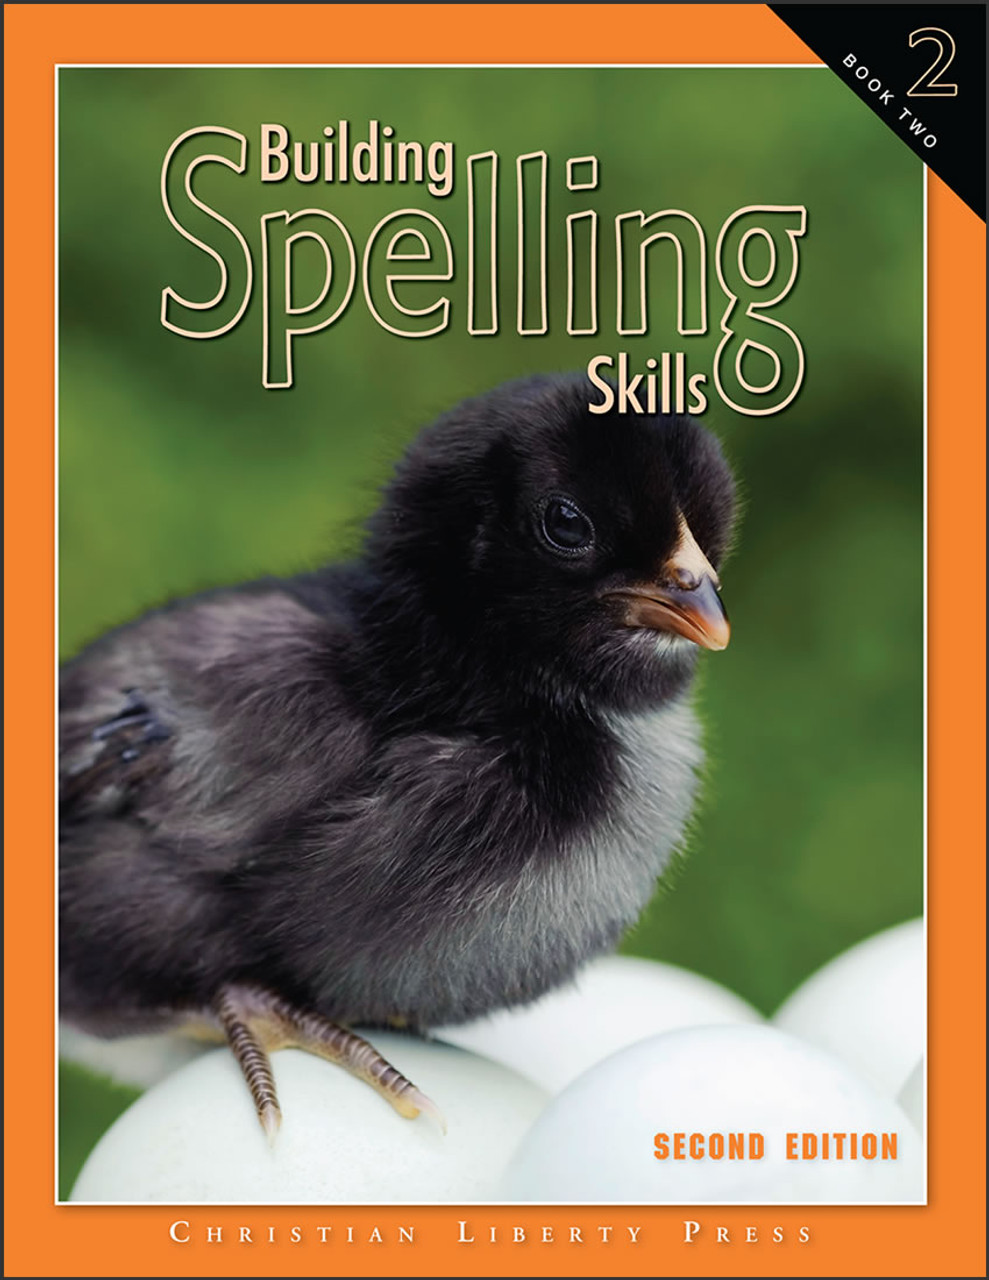 Building Spelling Skills 2, 2nd edition